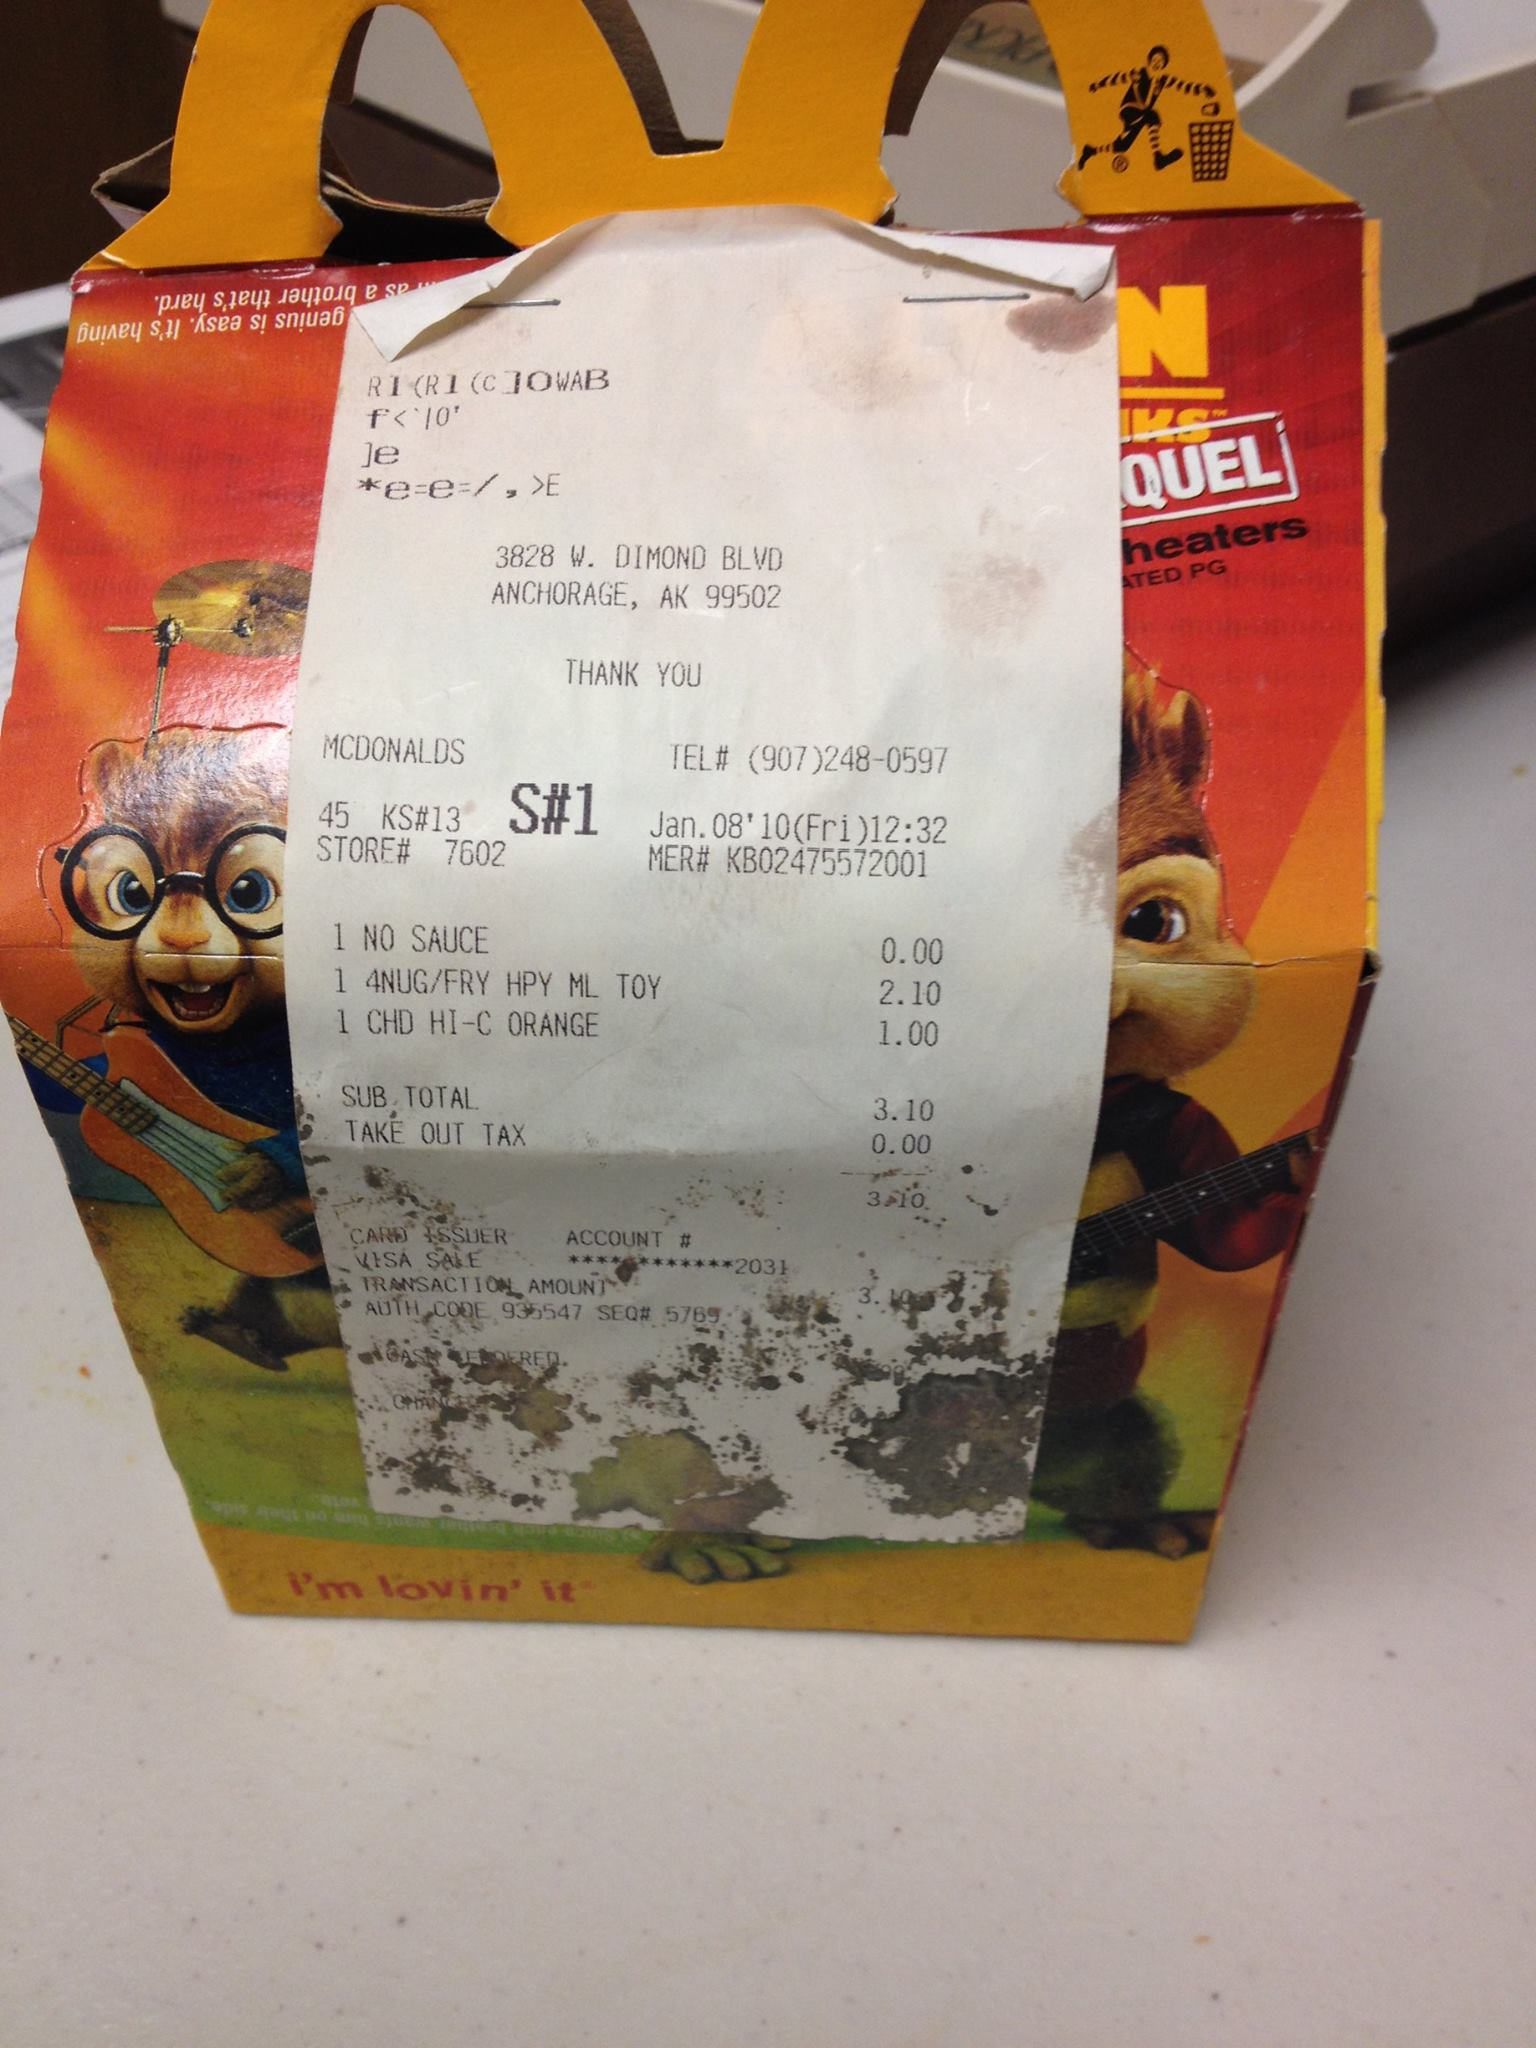 McDonald's Happy Meal with receipt showing purchase date of Jan. 8, 2010.